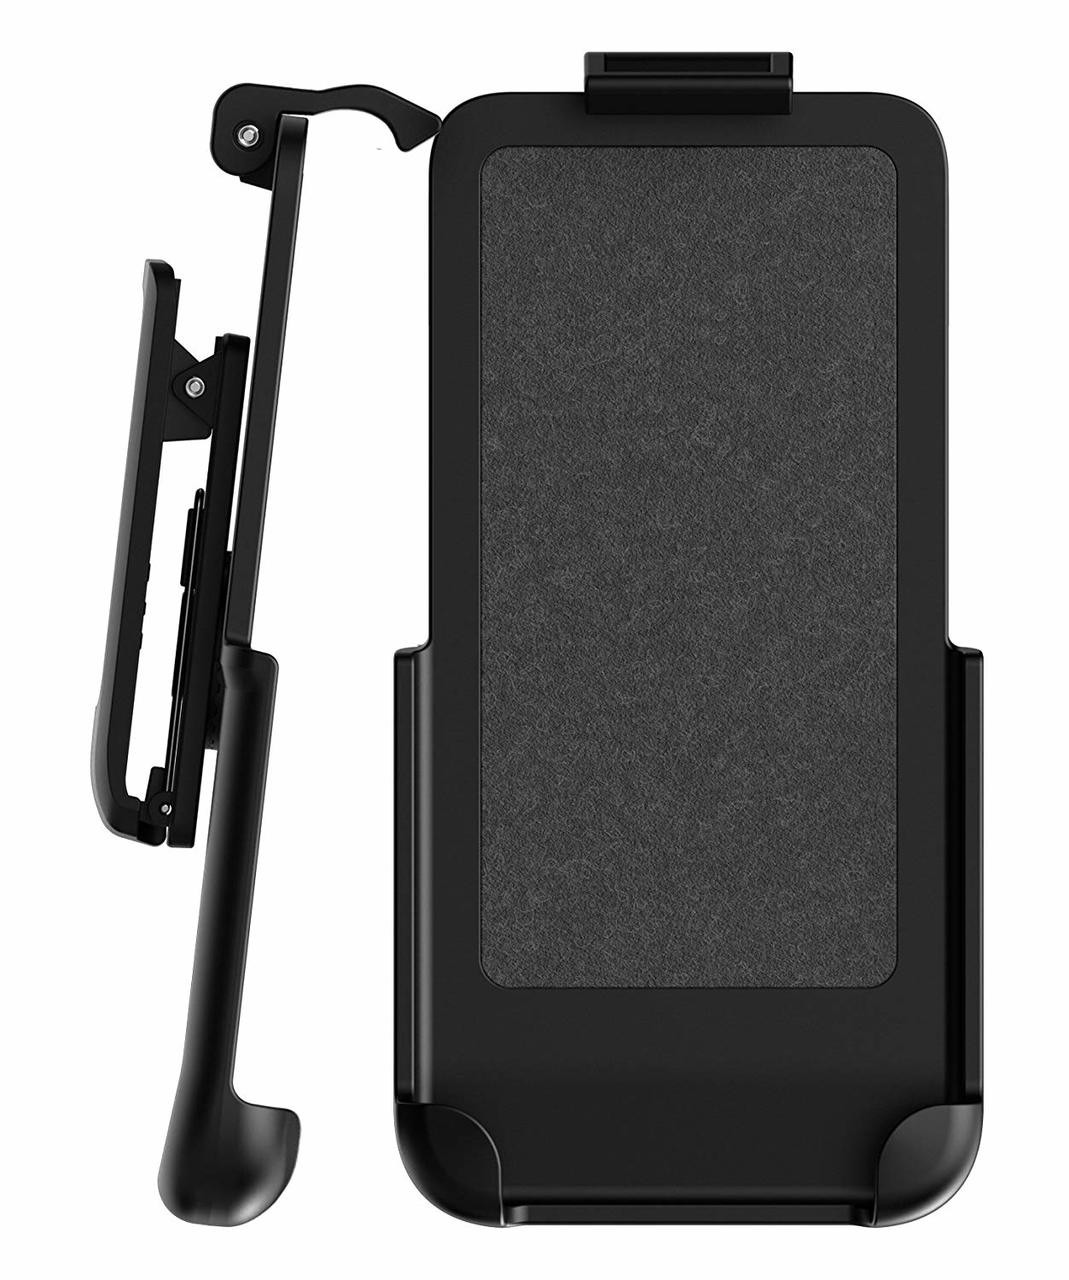 low priced 0151d b2544 Encased OtterBox Belt Clip Holster for OtterBox Symmetry Google Pixel 2  (case not included)